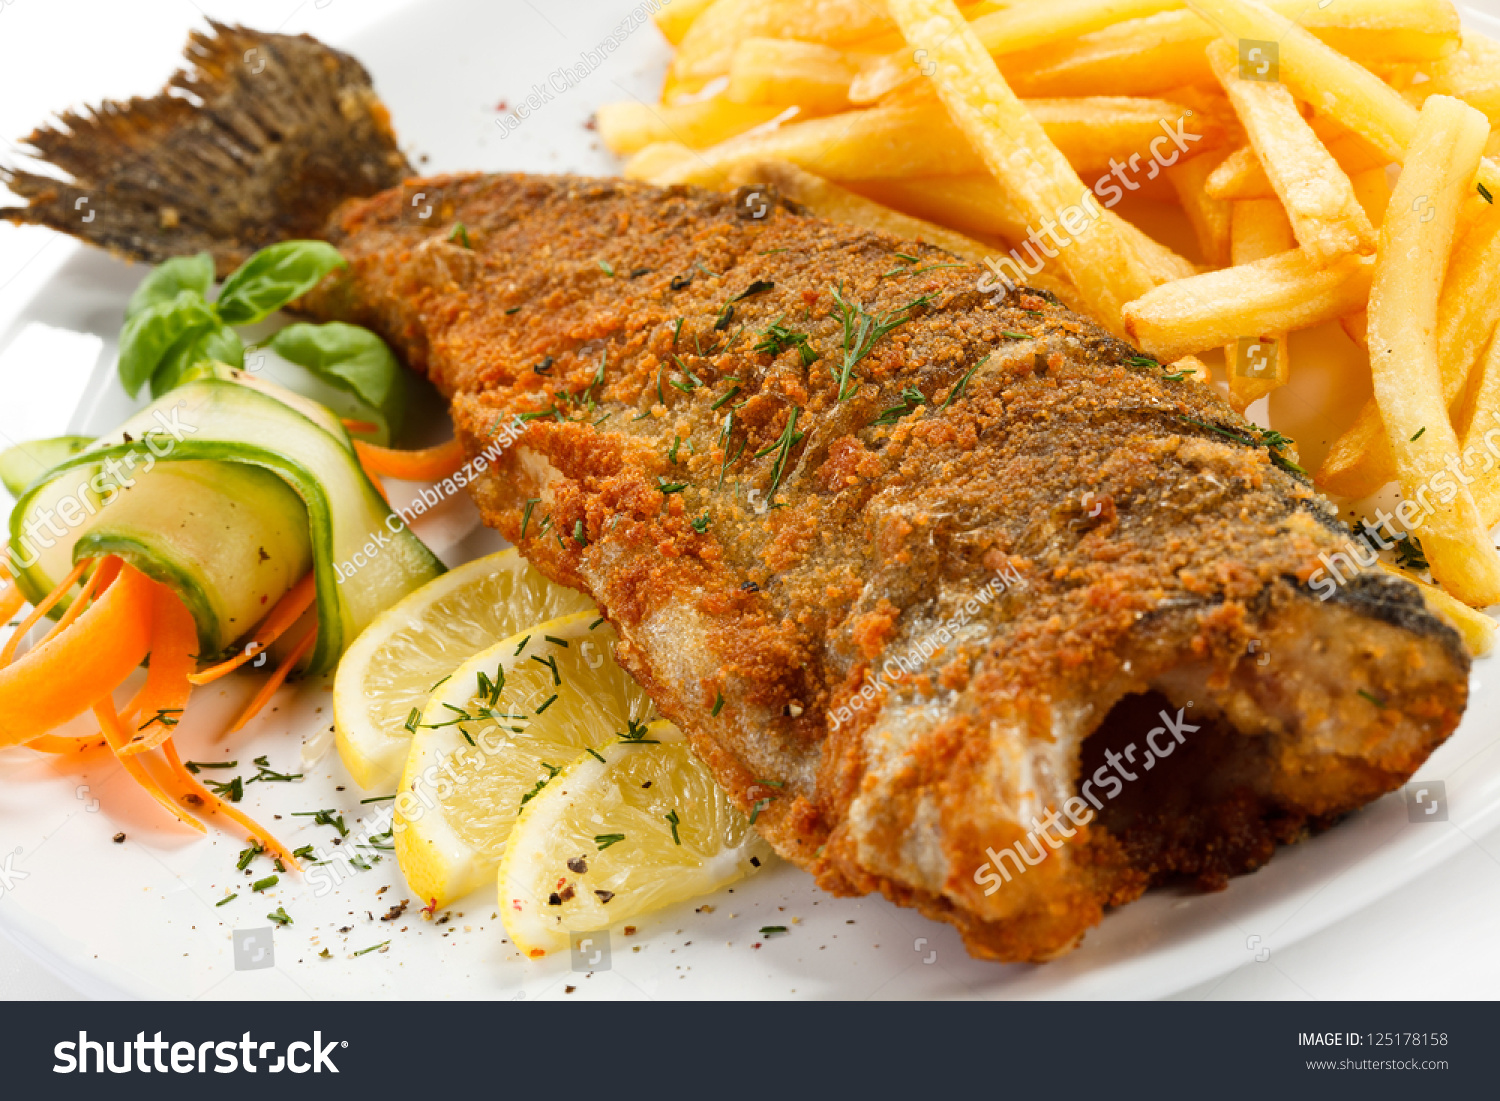 how to cook fried fish